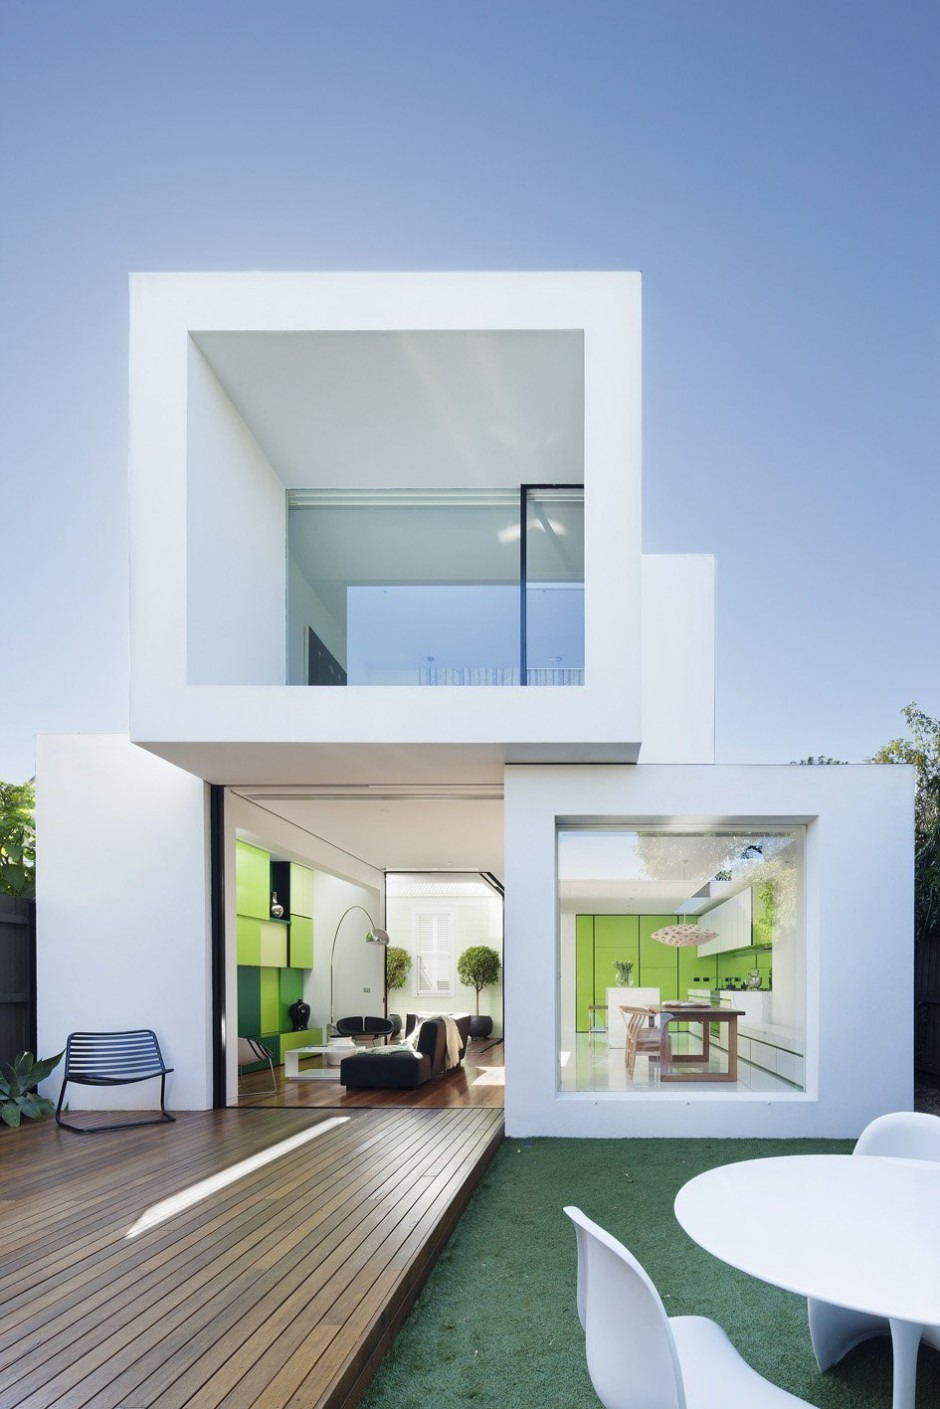 Top 50 Modern House Designs Ever Built featured on architecture beast 07